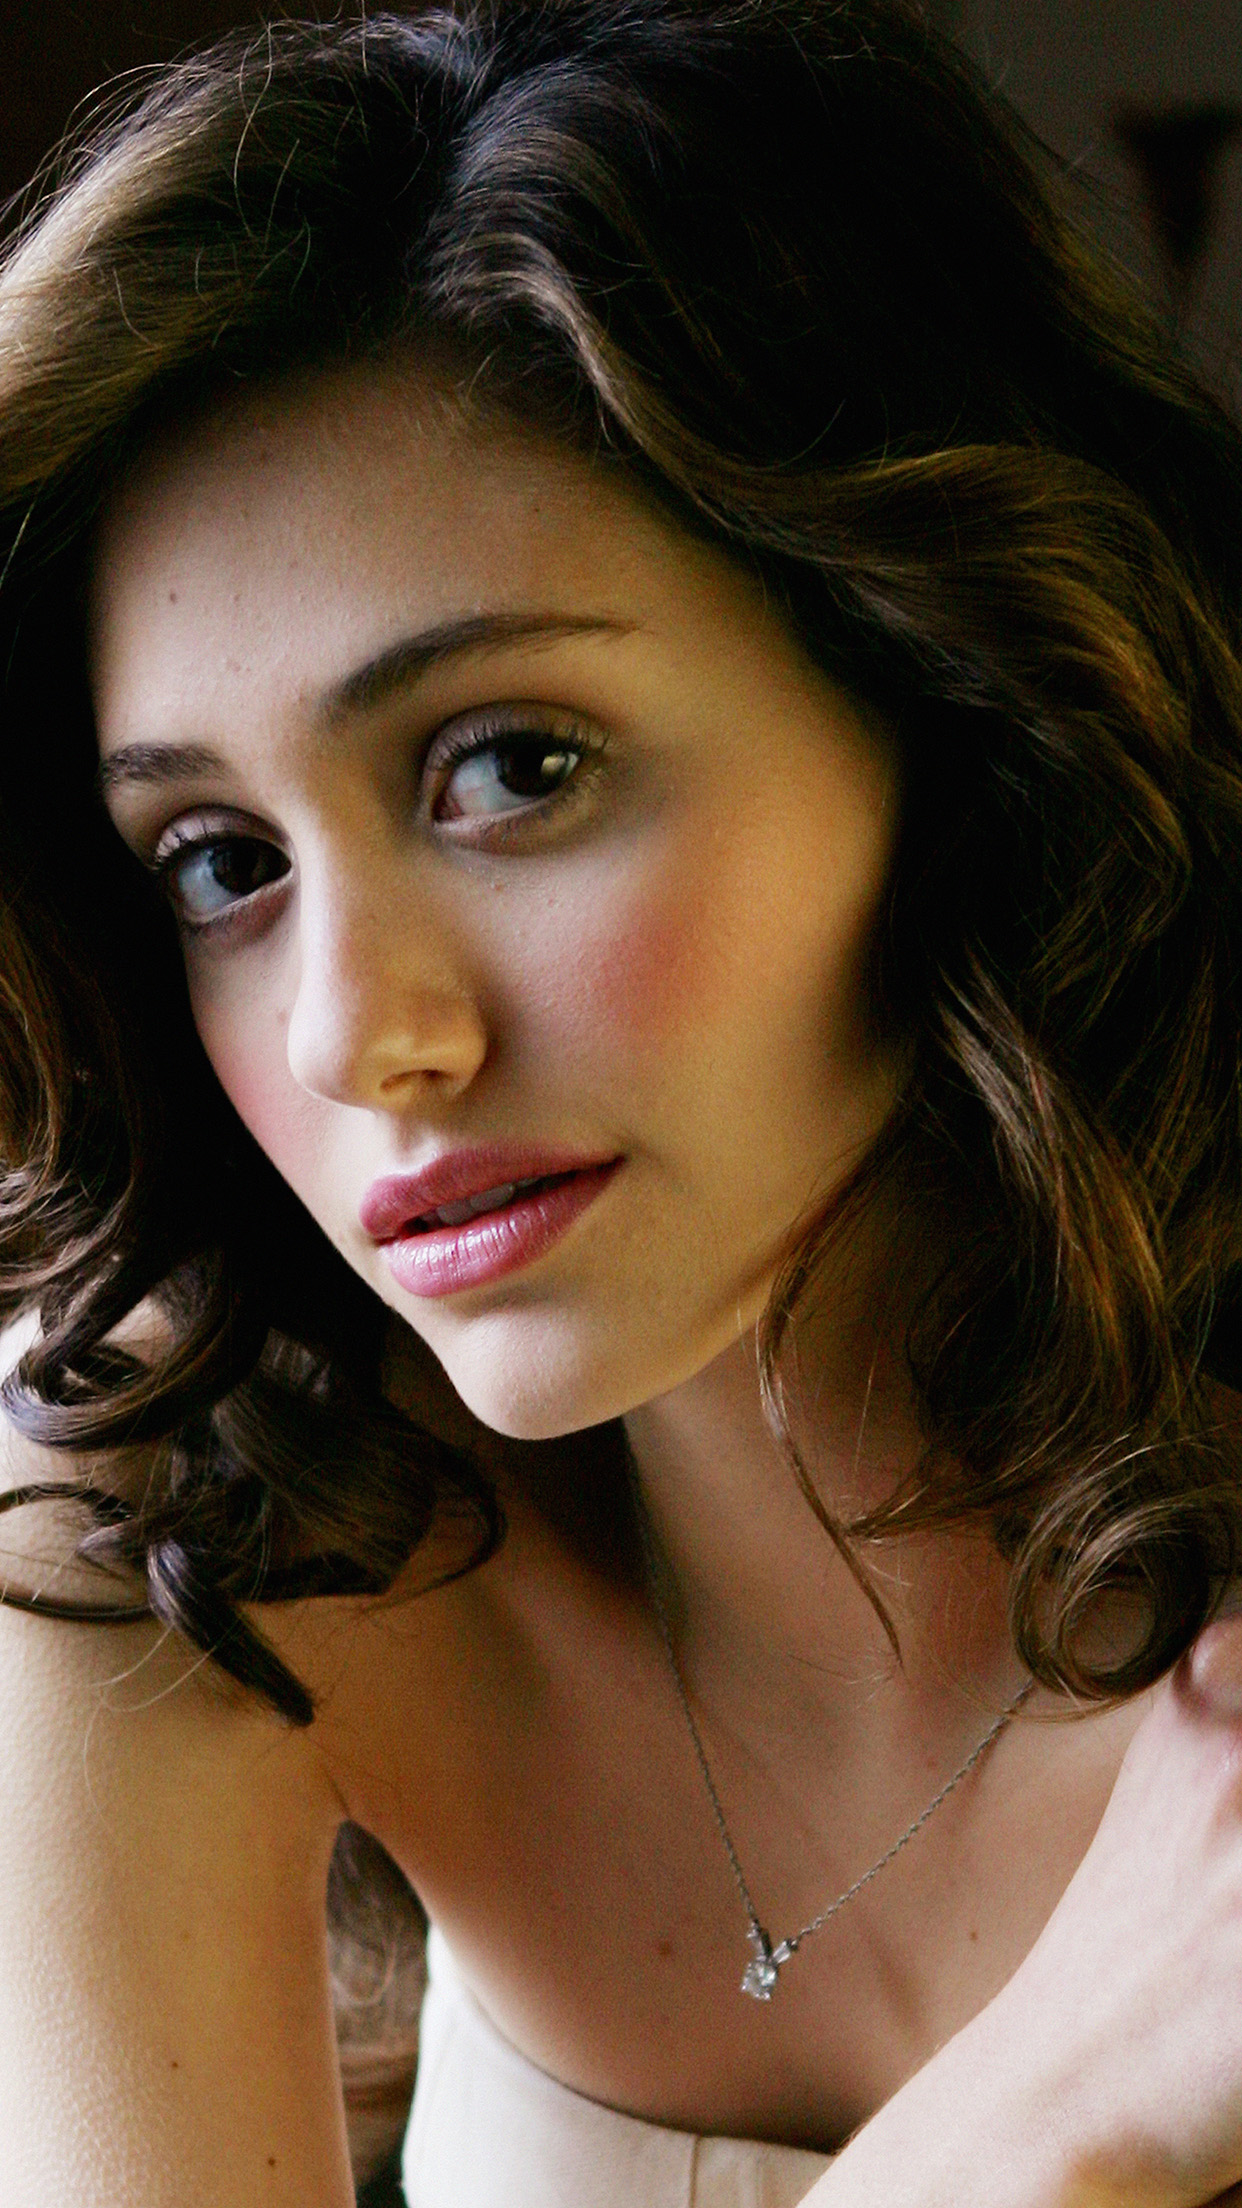 Summer Fall Desktop Wallpaper Papers Co Iphone Wallpaper Hk61 Emmy Rossum Actress